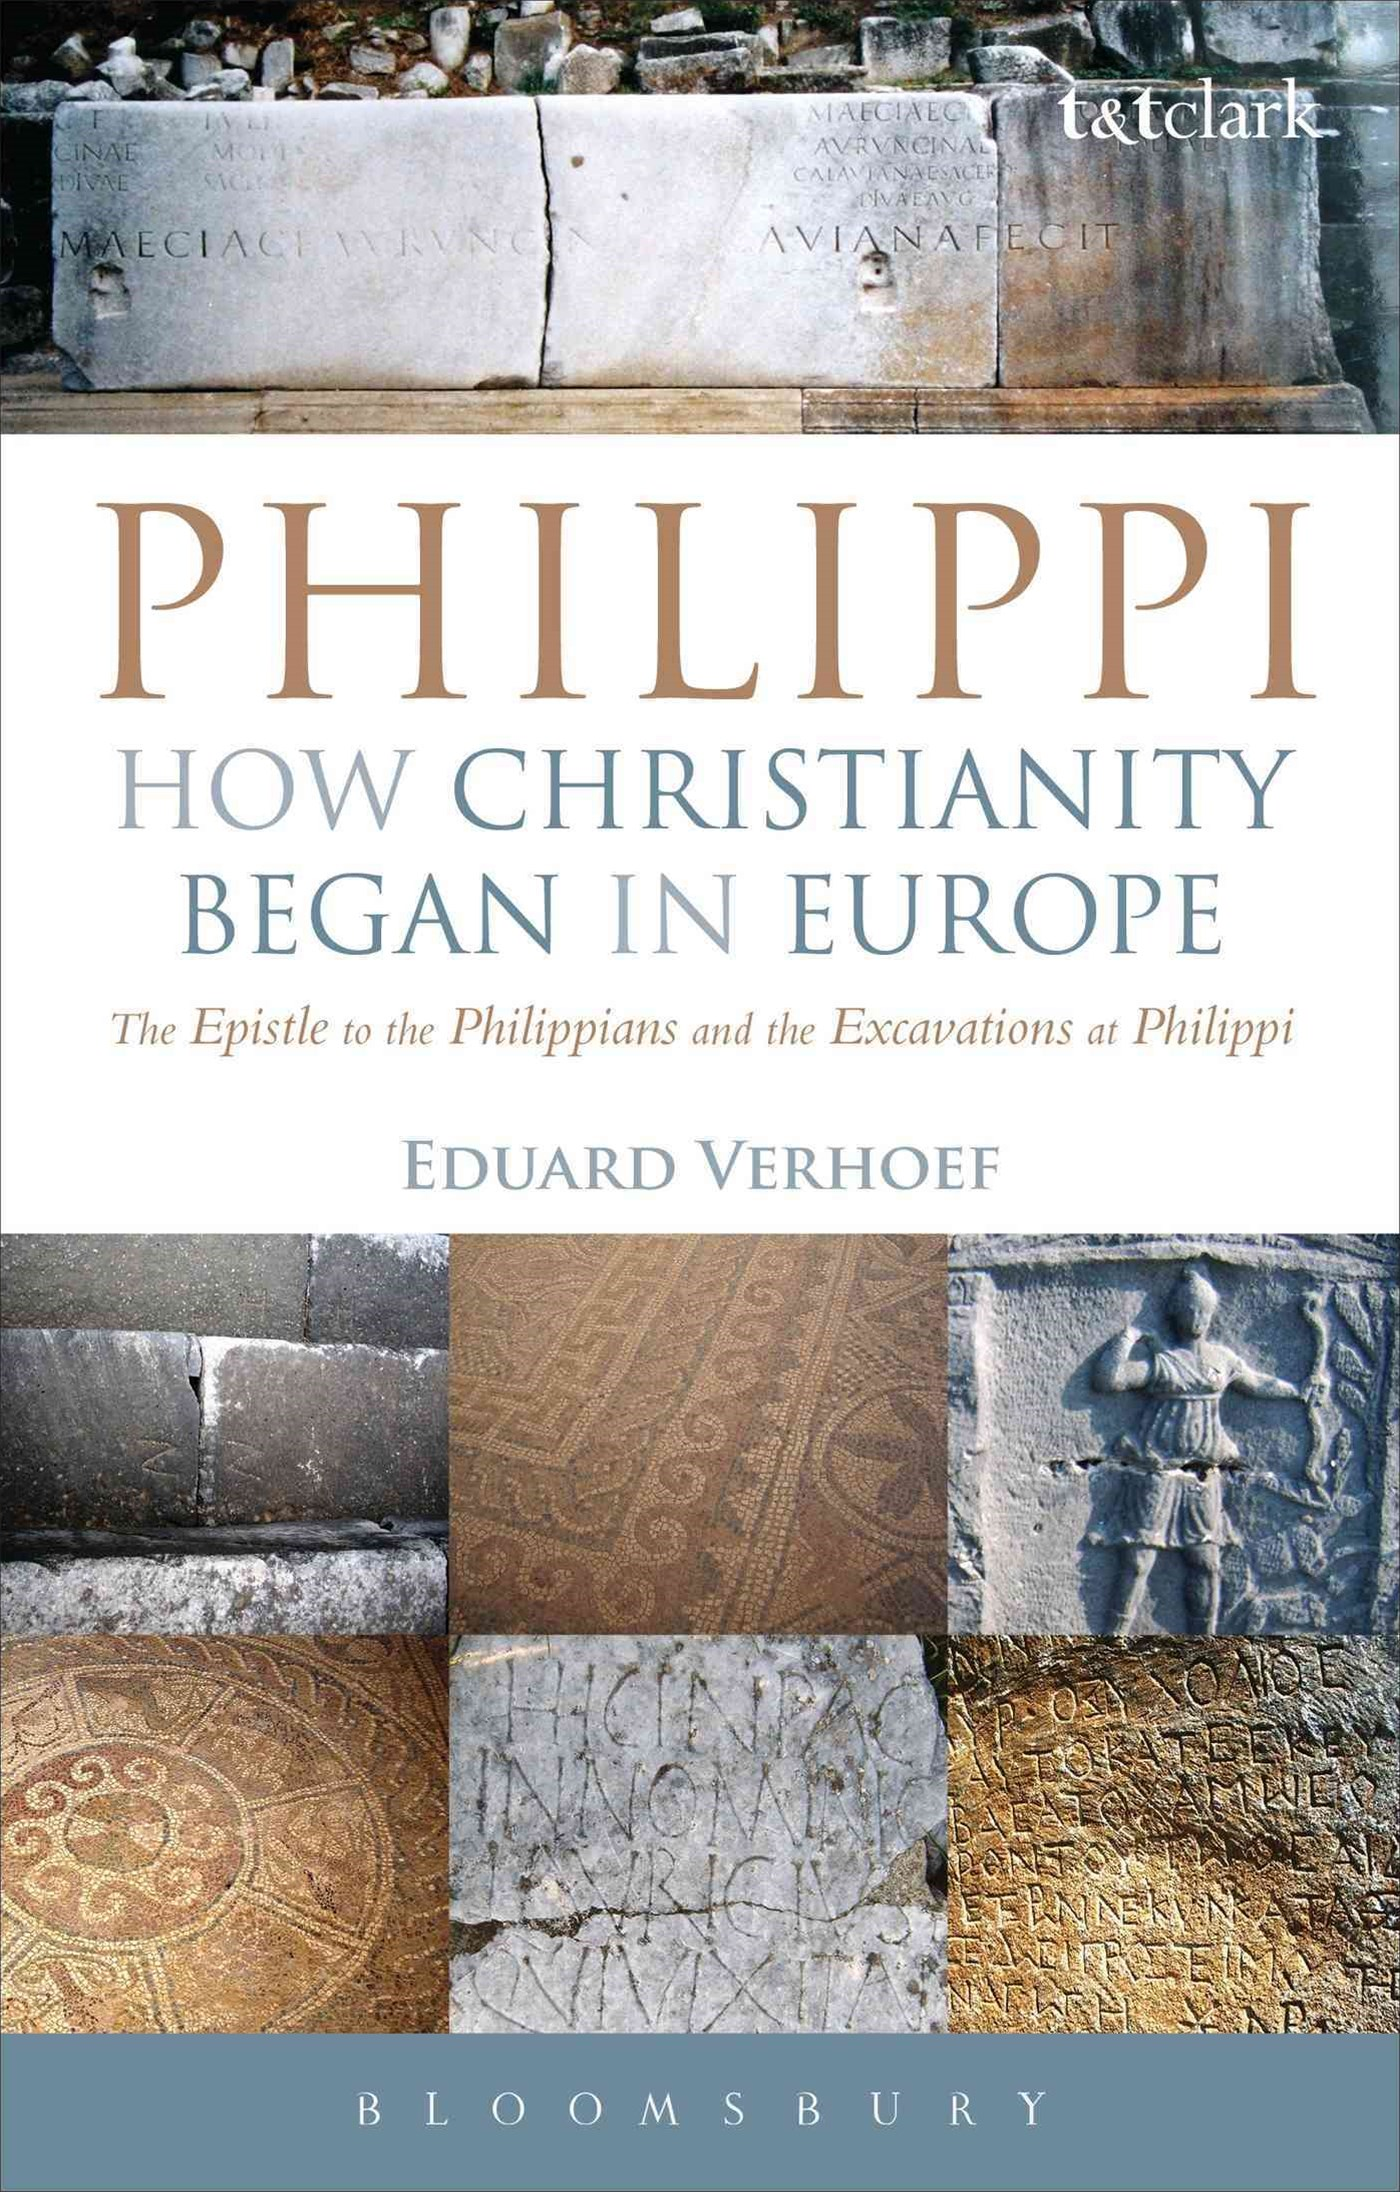 Philippi: How Christianity Began in Europe